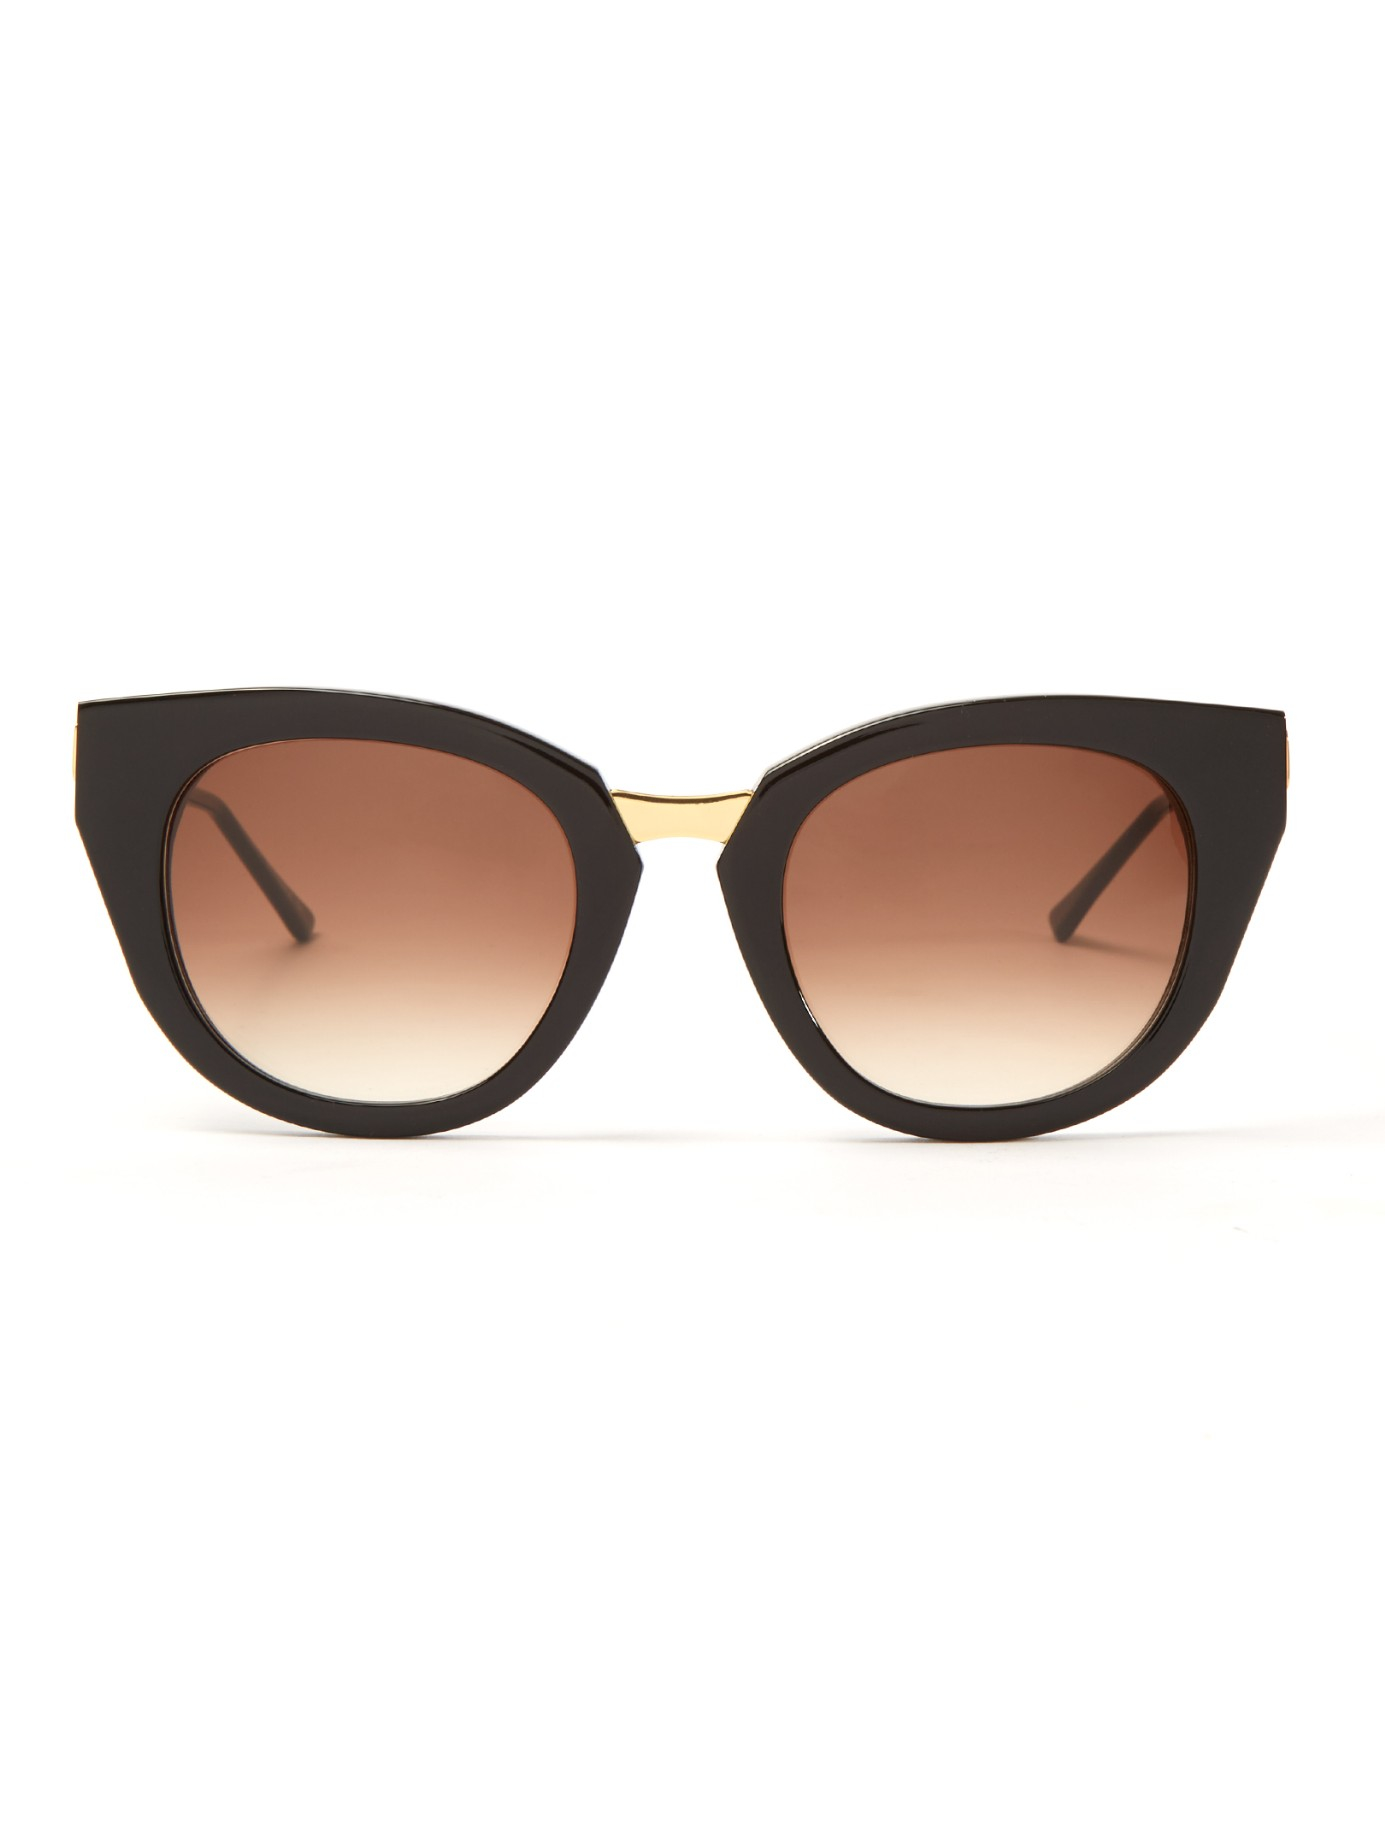 Thierry lasry Snobby Cat-eye Frame Sunglasses in Black Lyst